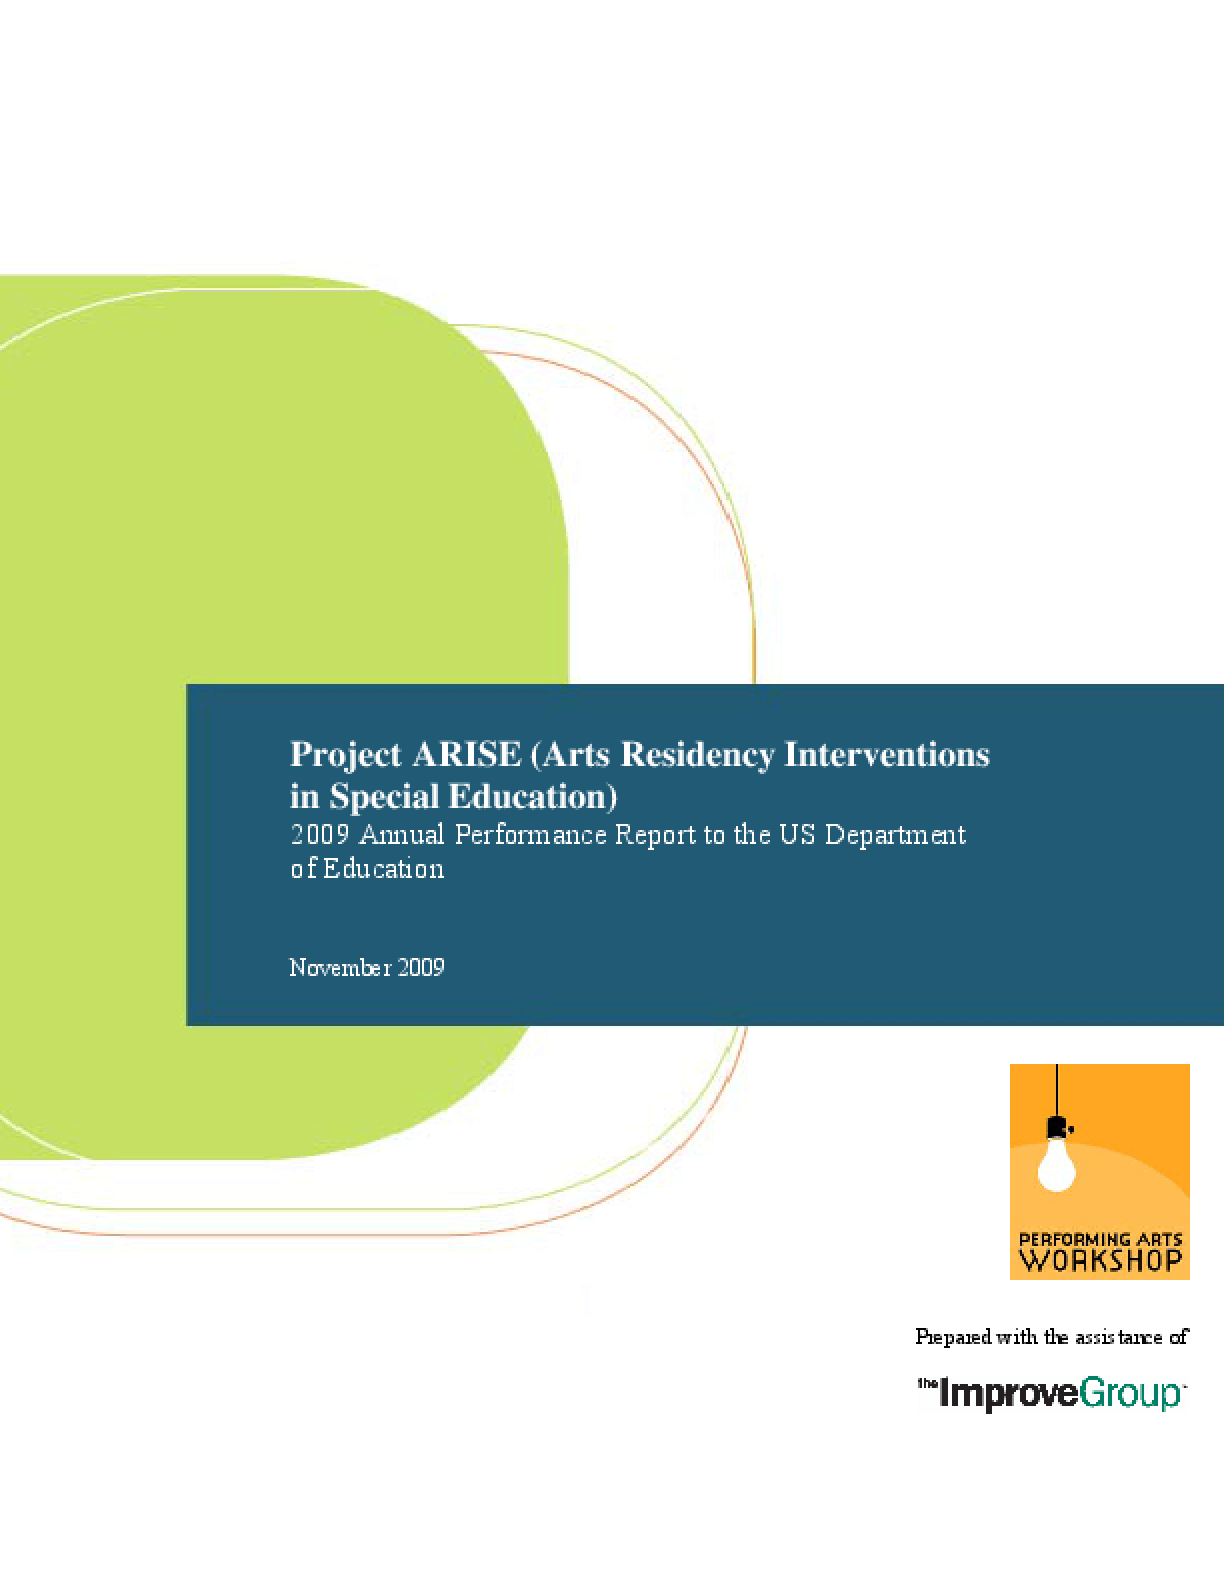 ARISE 2009 Annual Performance Report to the US Department of Education